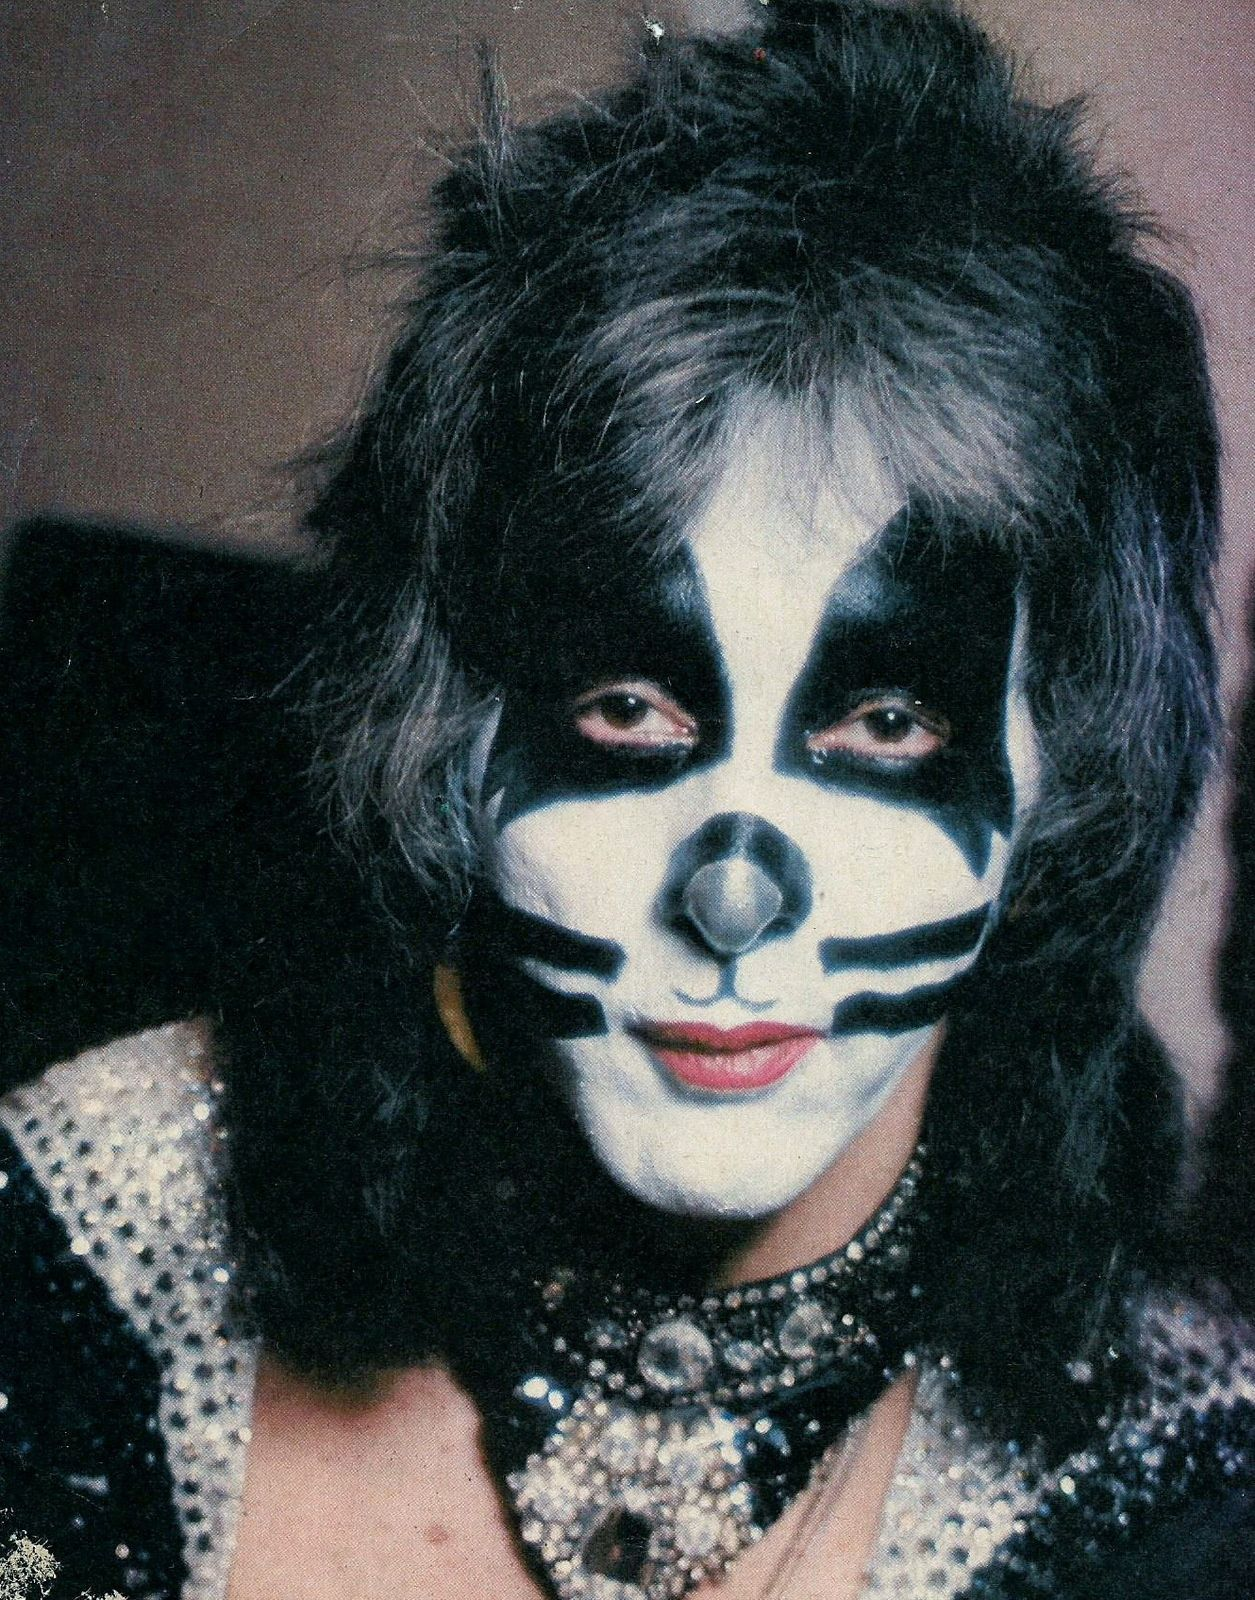 Peter Criss, co-founder and original drummer of hard rock band Kiss